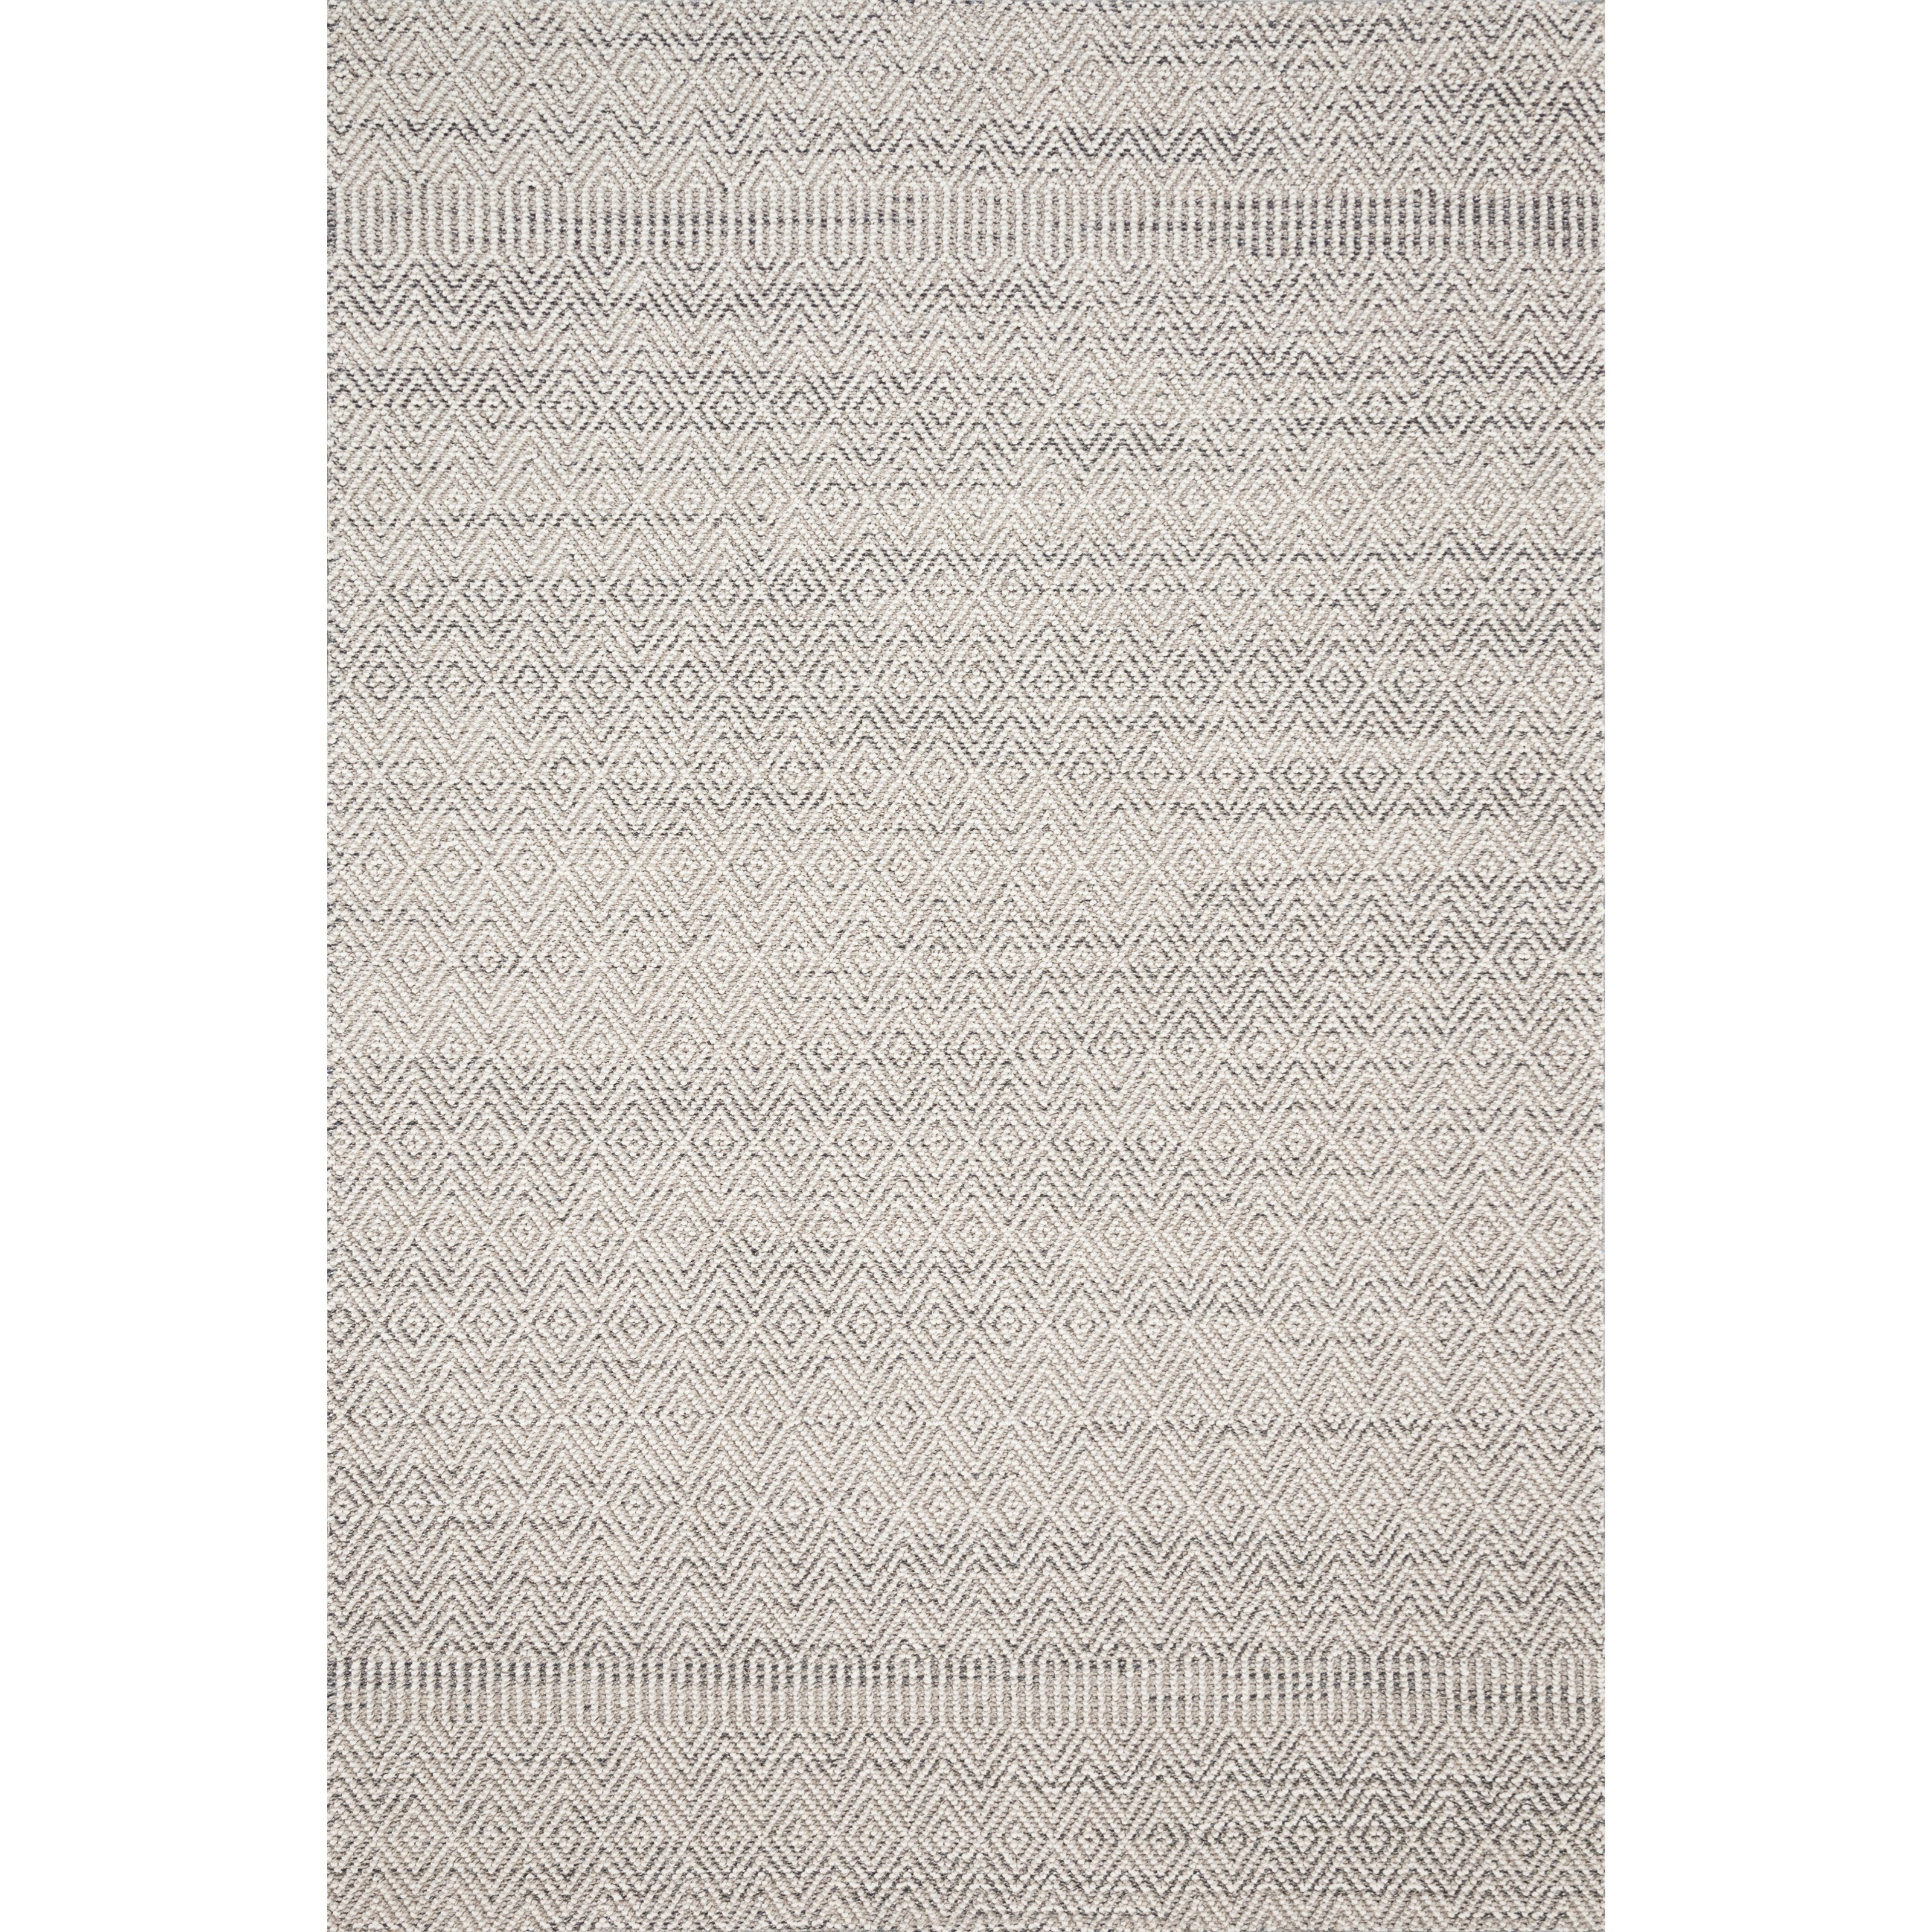 """Cole 2'7"""" x 7'9"""" Grey / Bone Rug by Loloi Rugs at Virginia Furniture Market"""